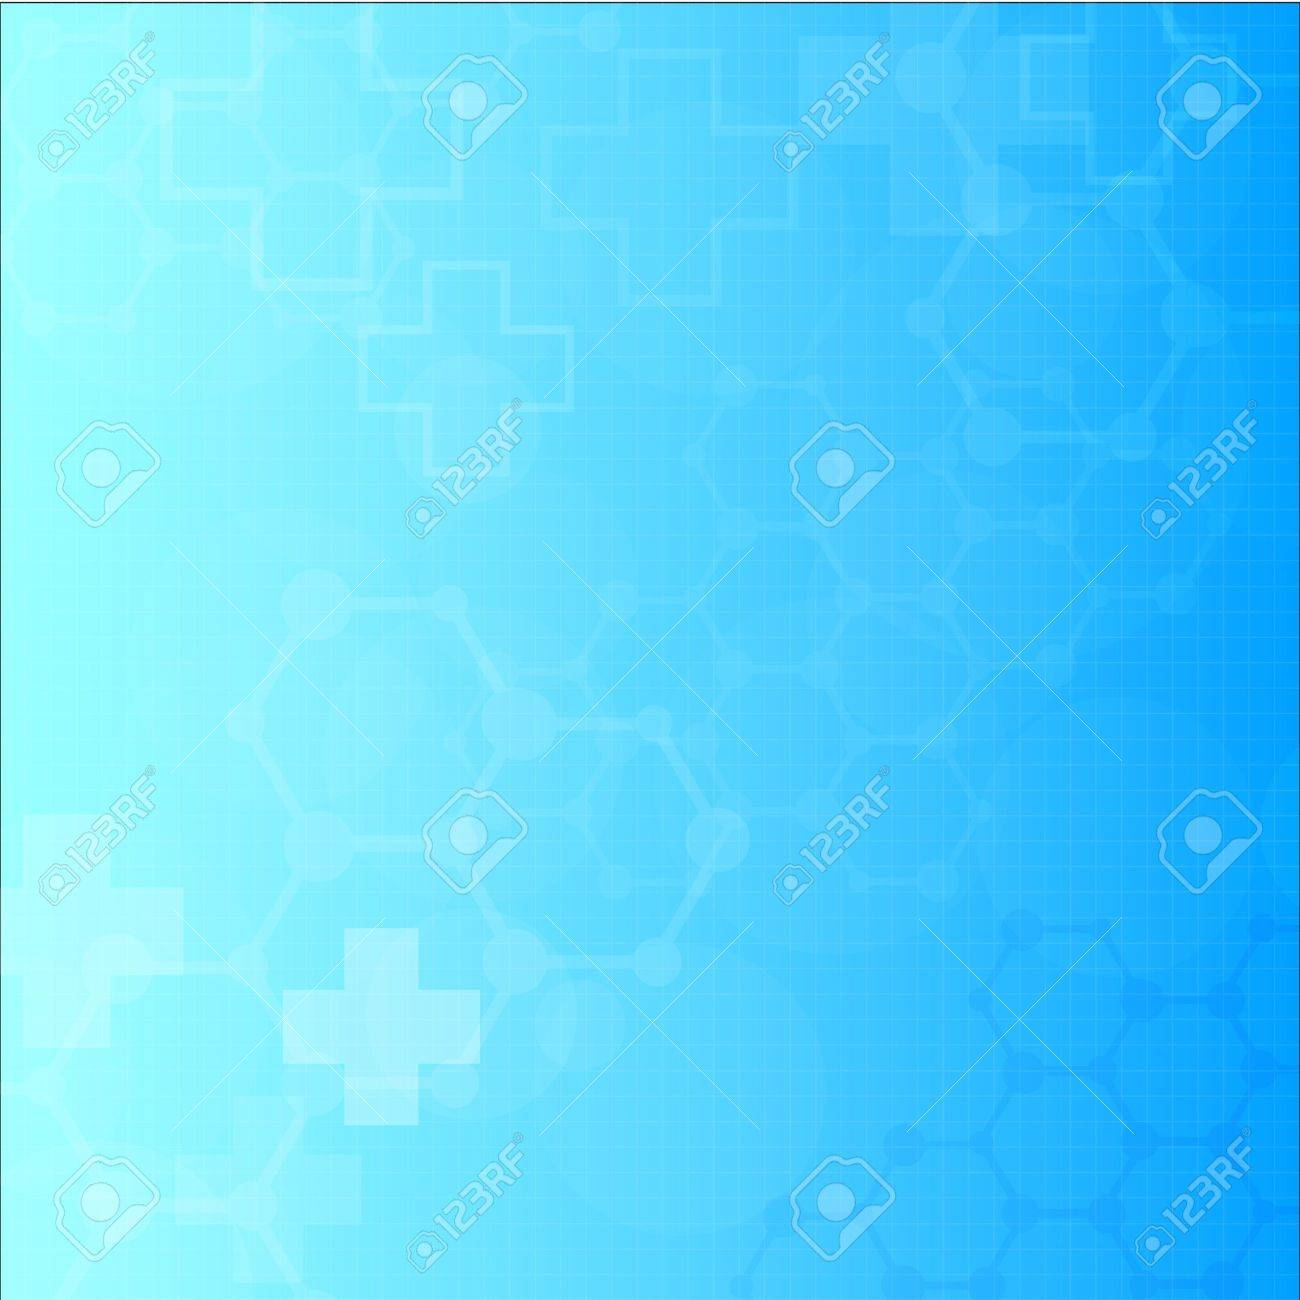 Abstract molecules medical background - 18562319